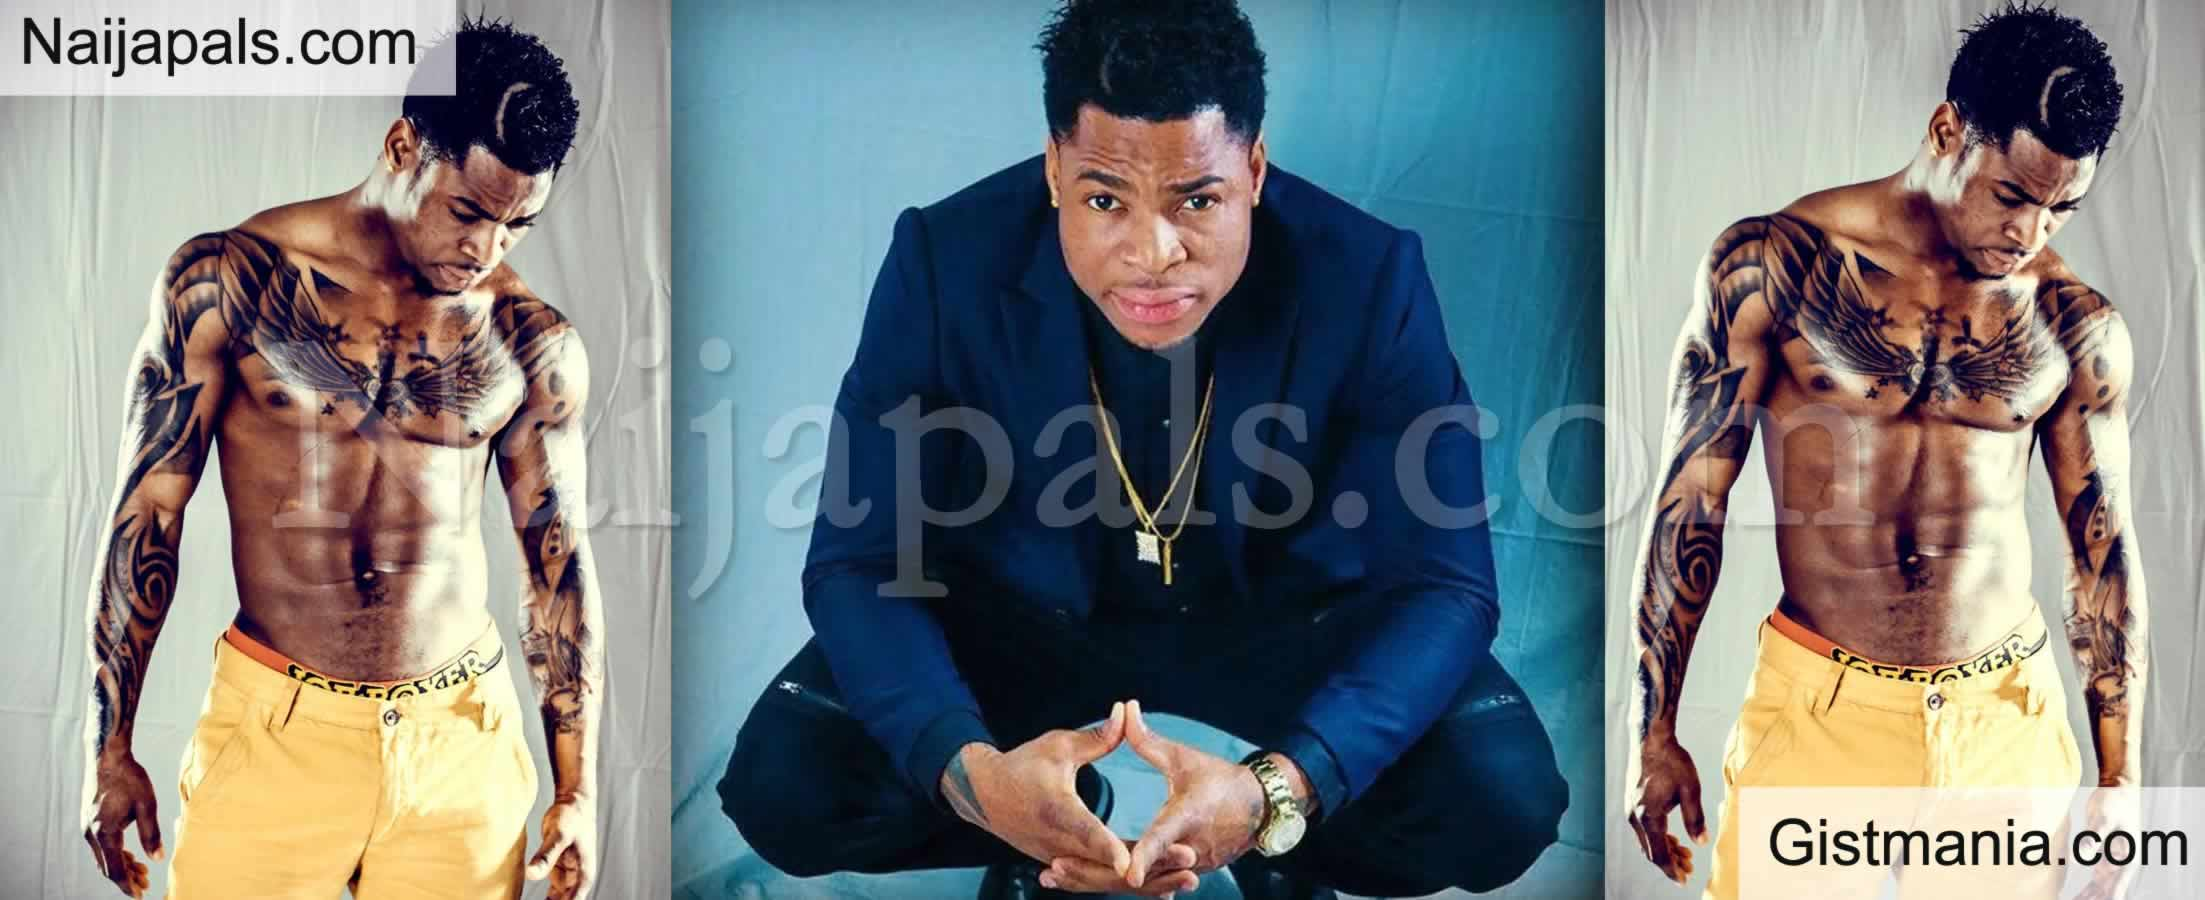 <img alt='.' class='lazyload' data-src='https://img.gistmania.com/emot/photo.png' /> Malaysia Based Nigerian <b>Actor Abey Abimbola Flaunts His Built Body That Attracts Female Fans</b>